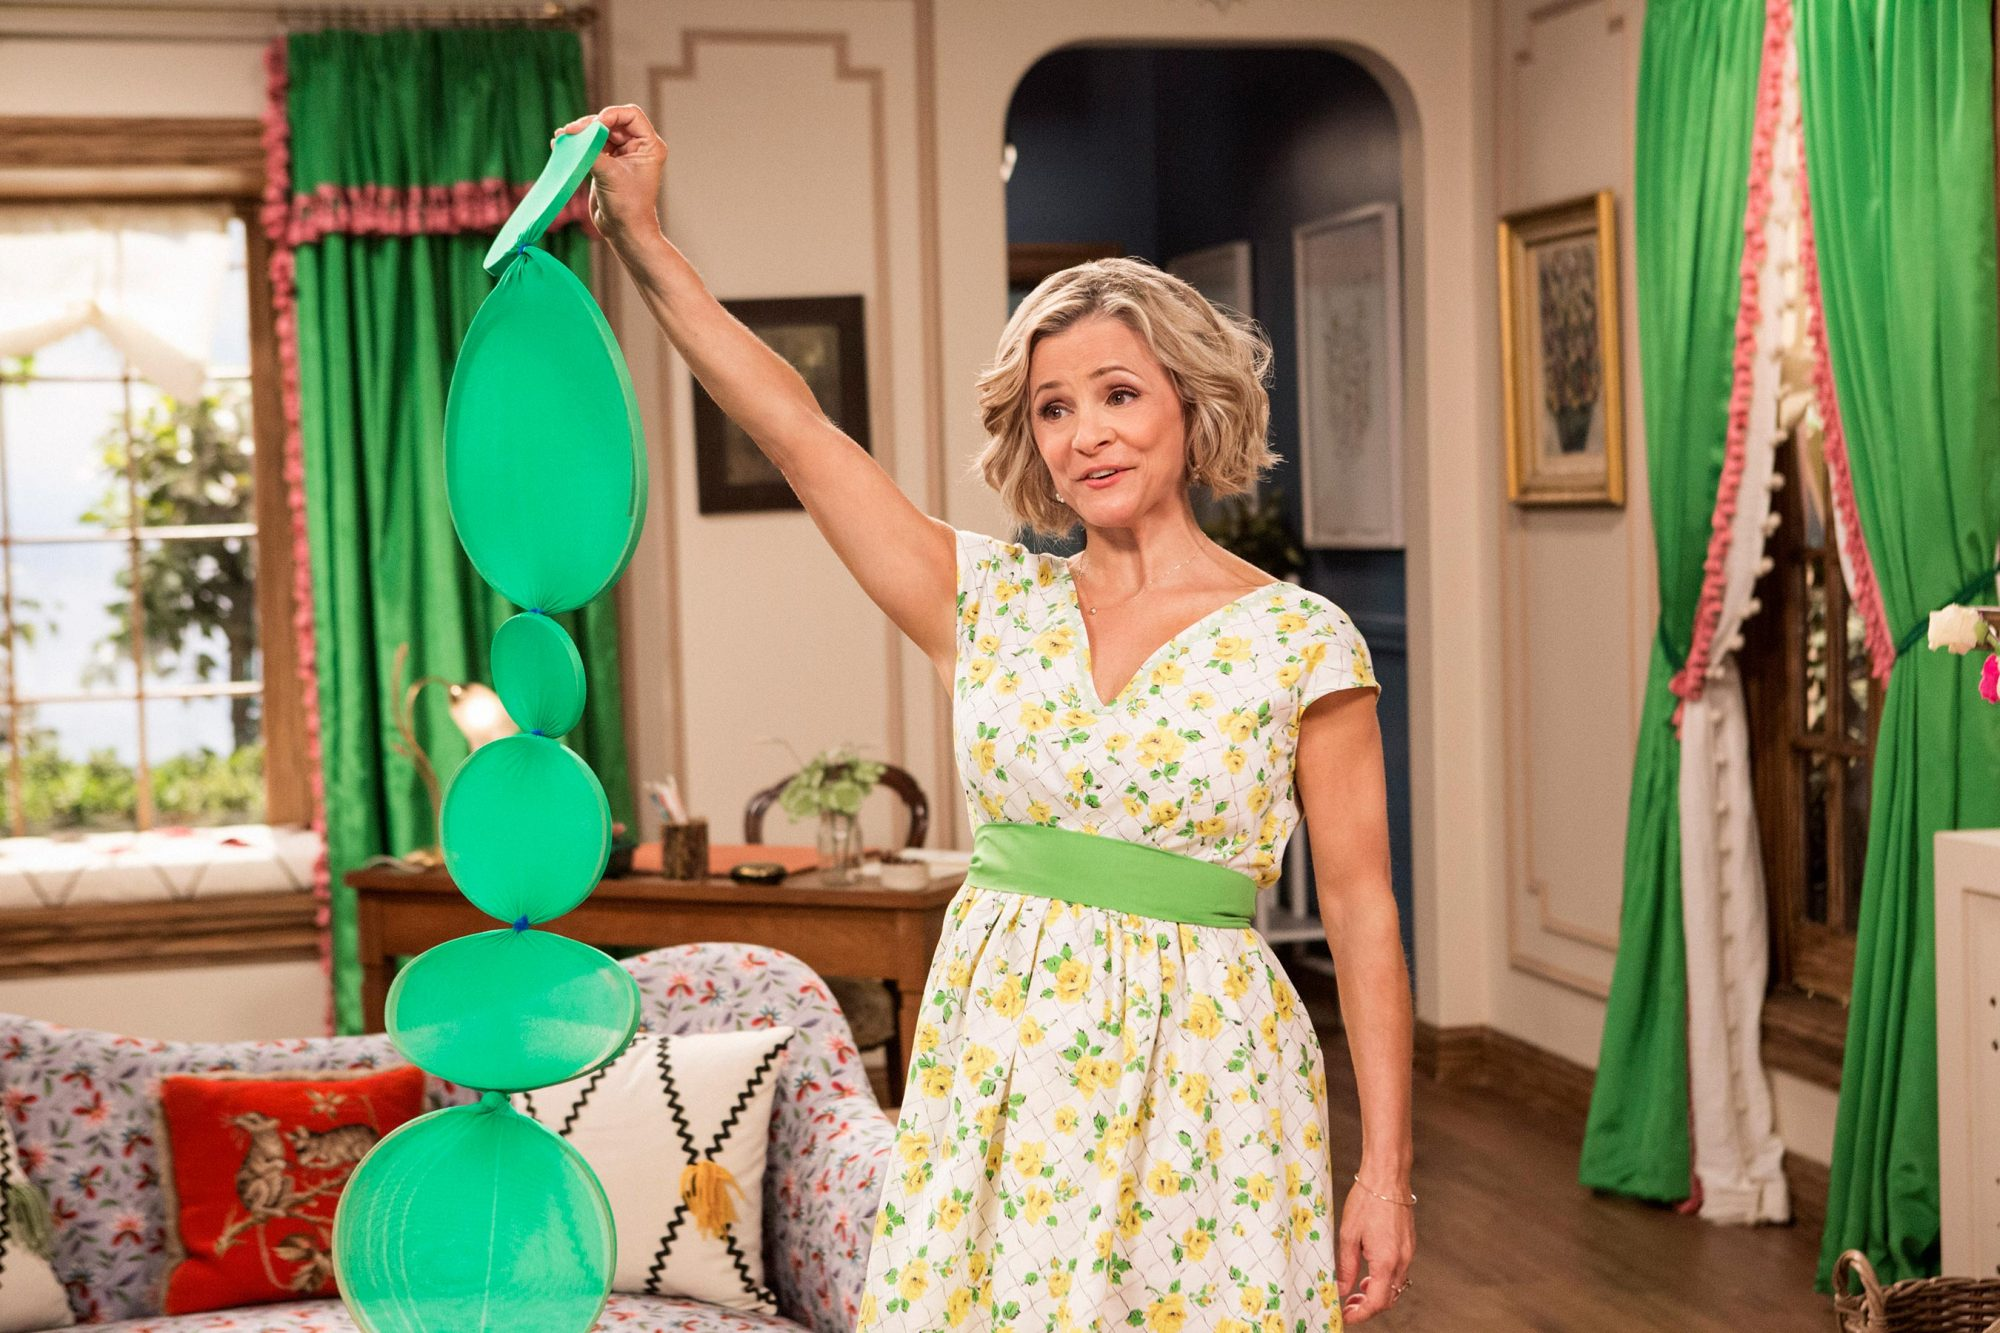 At Home with Amy SedarisEpisode name tkPictured: Amy Sedaris